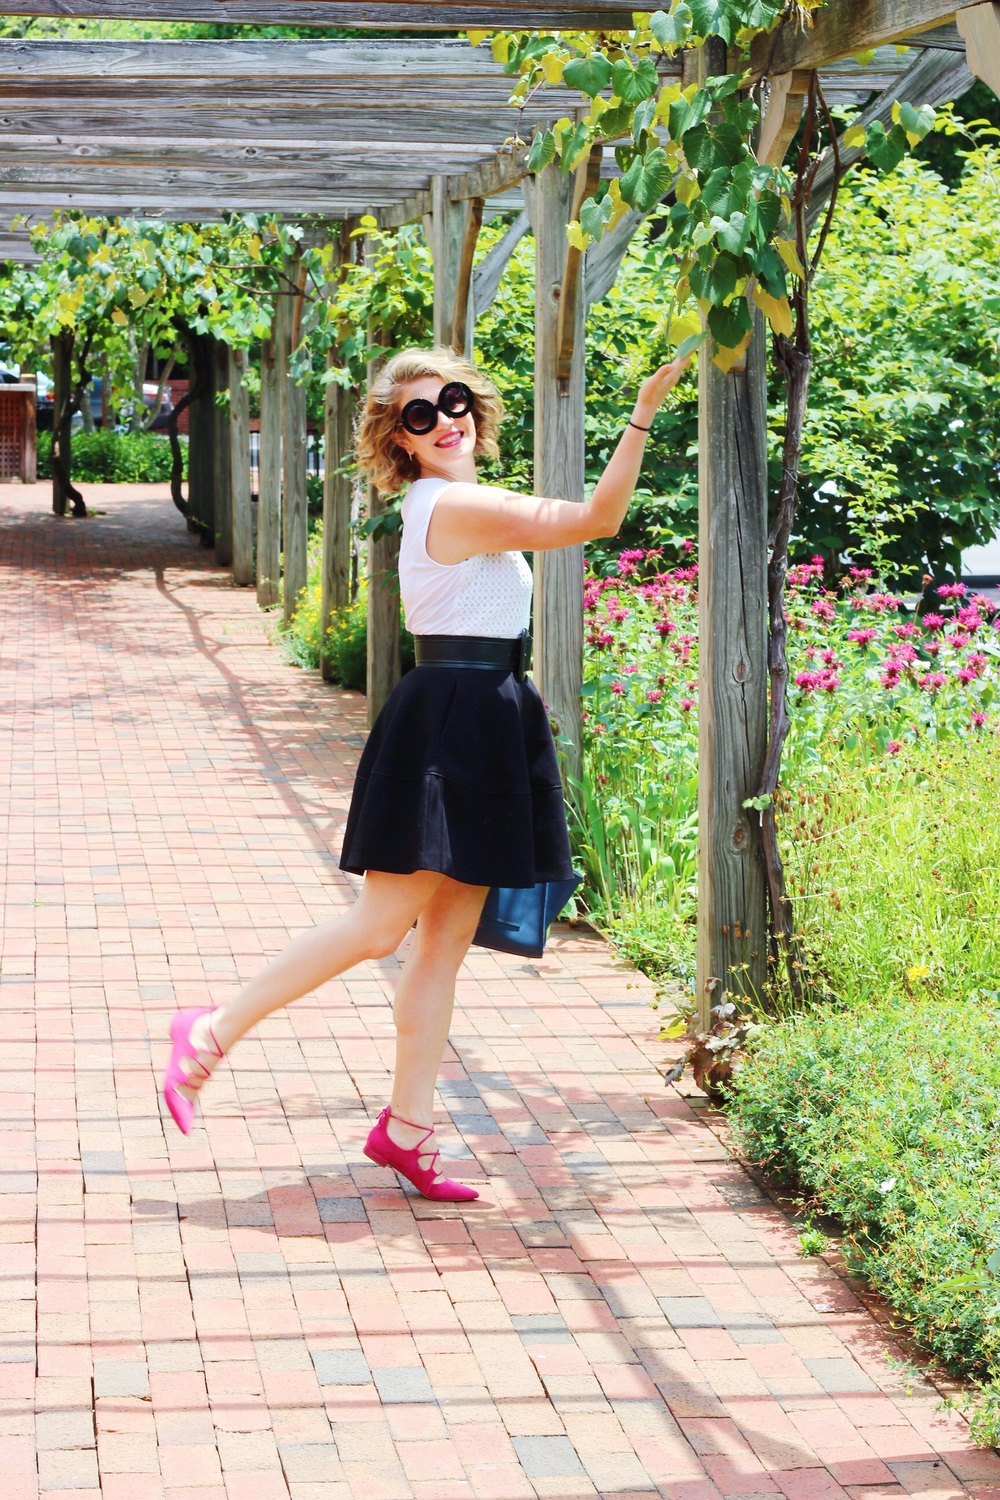 Winery tour at the Biltmore Estate in Asheville, NC. Skirt by H&M (similar), top by Ann Taylor (similar), shoes by Elie Tihari via DSW.